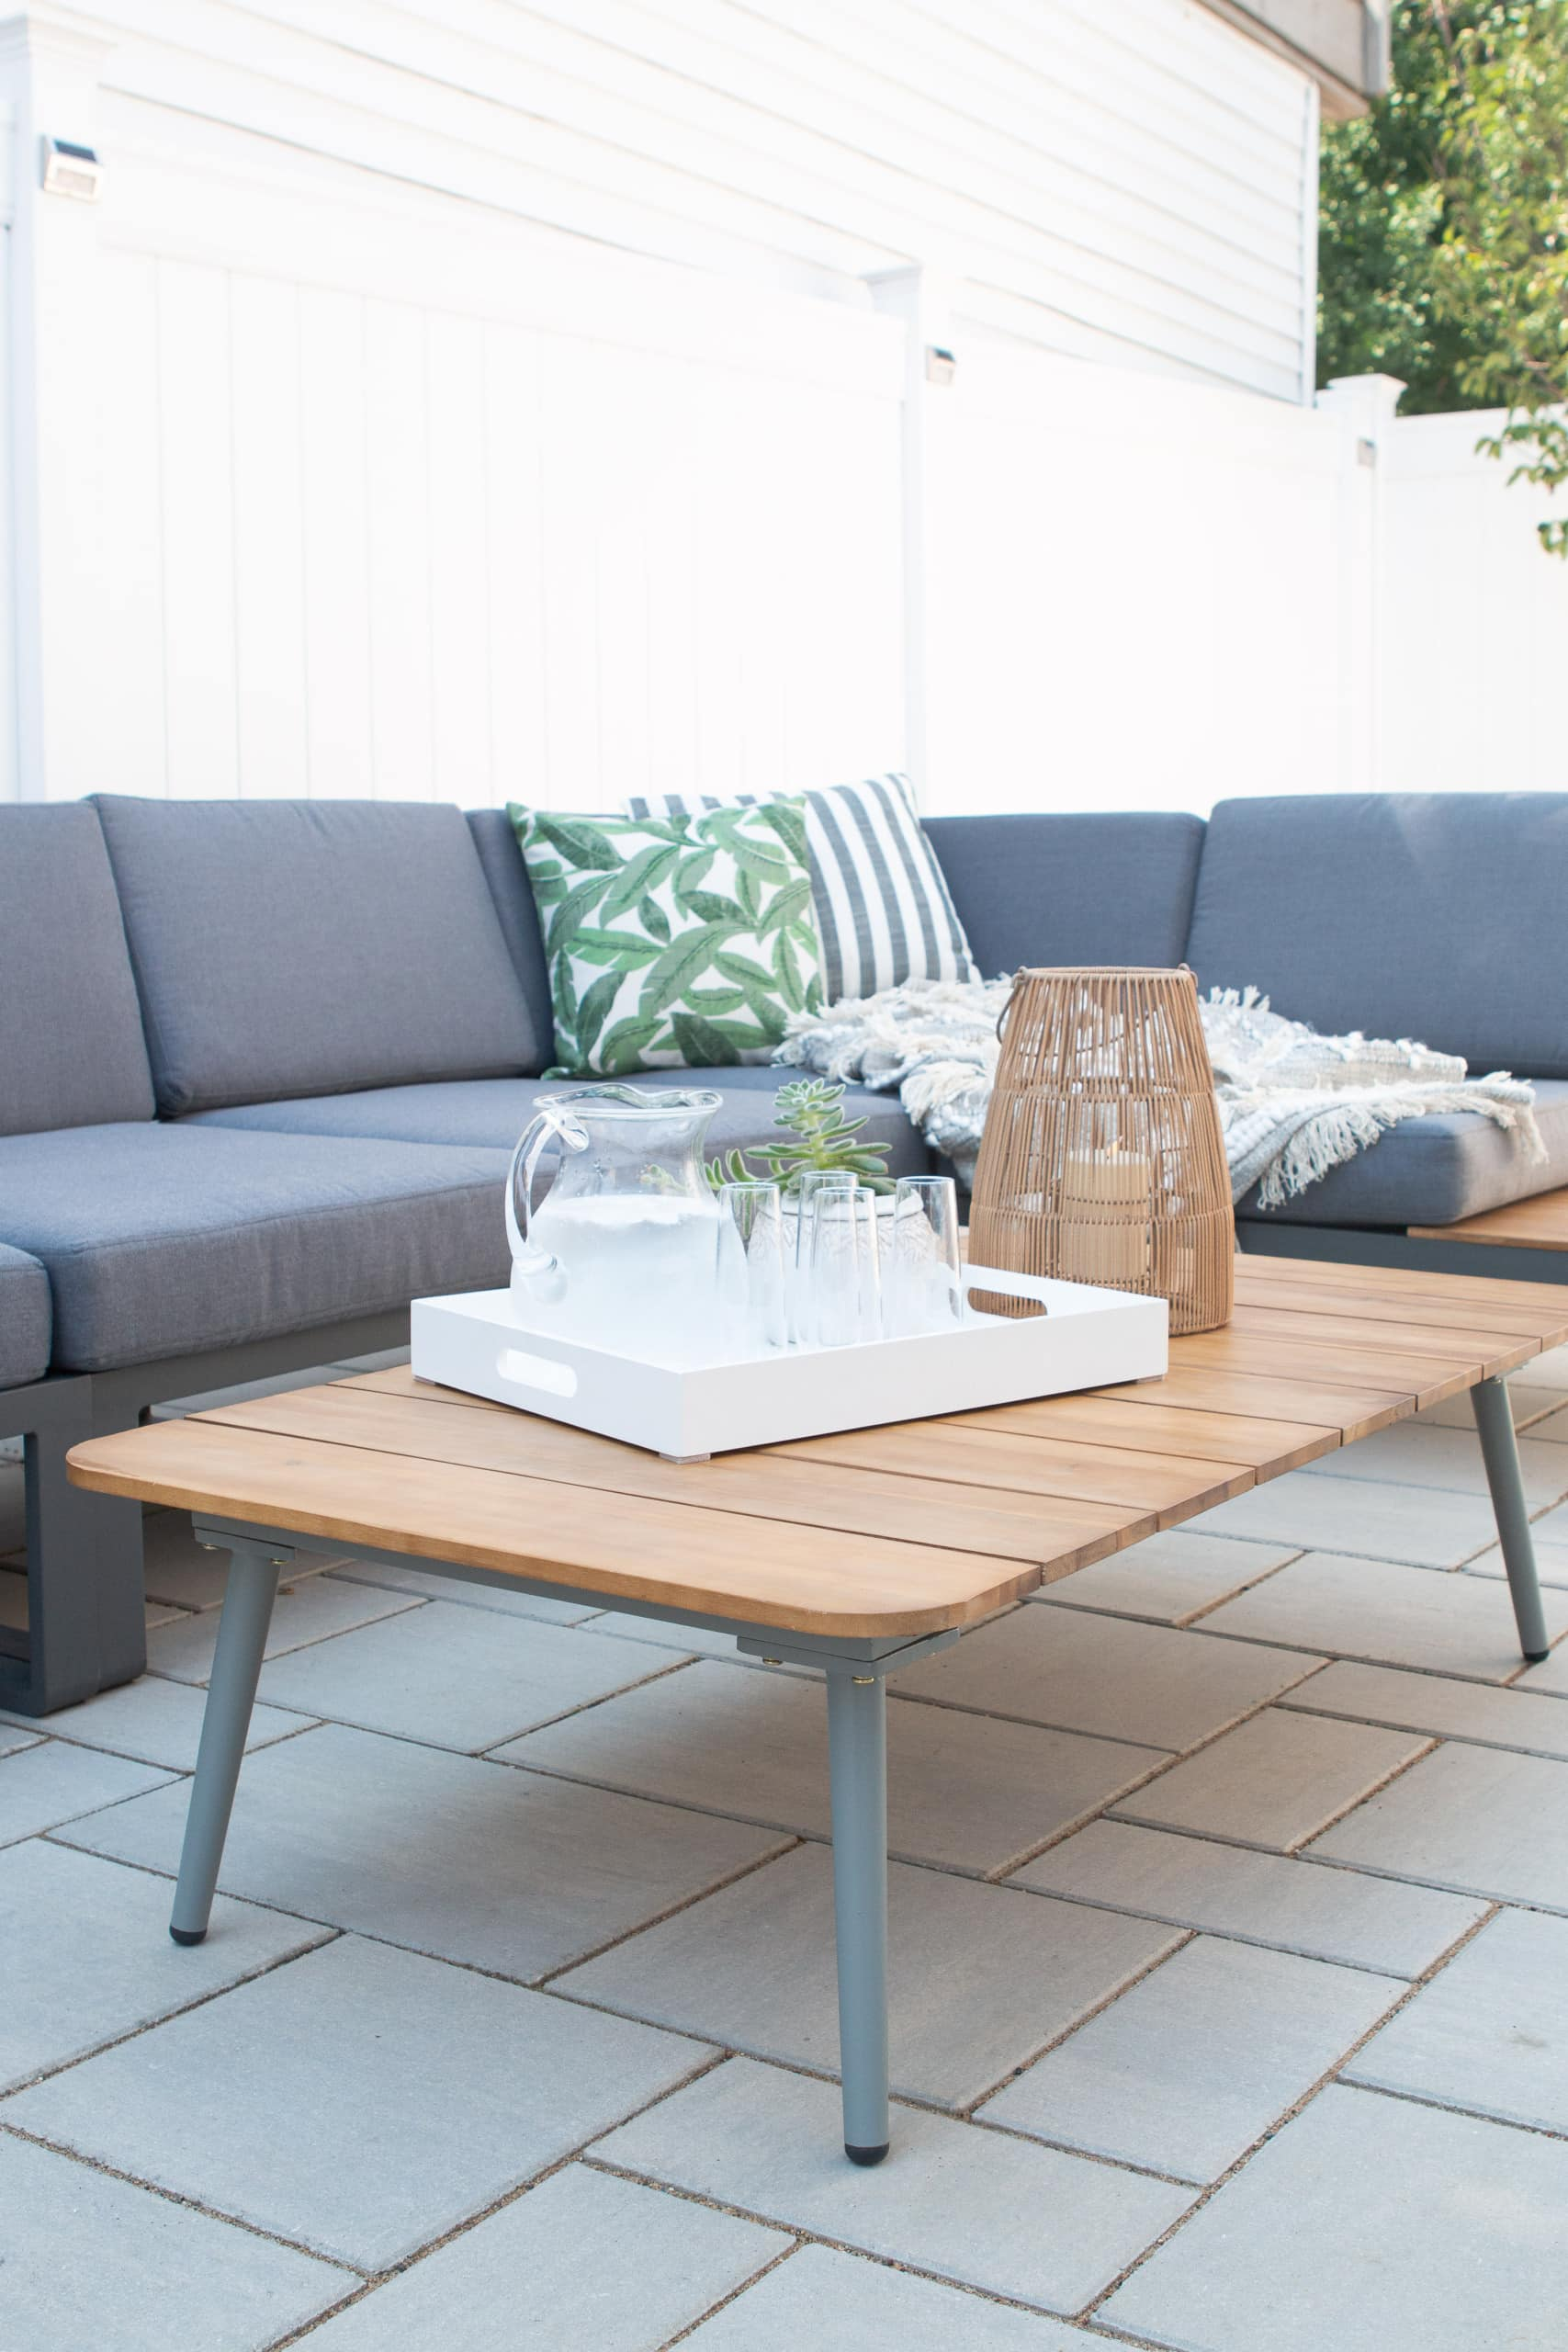 Latta coffee table from Article